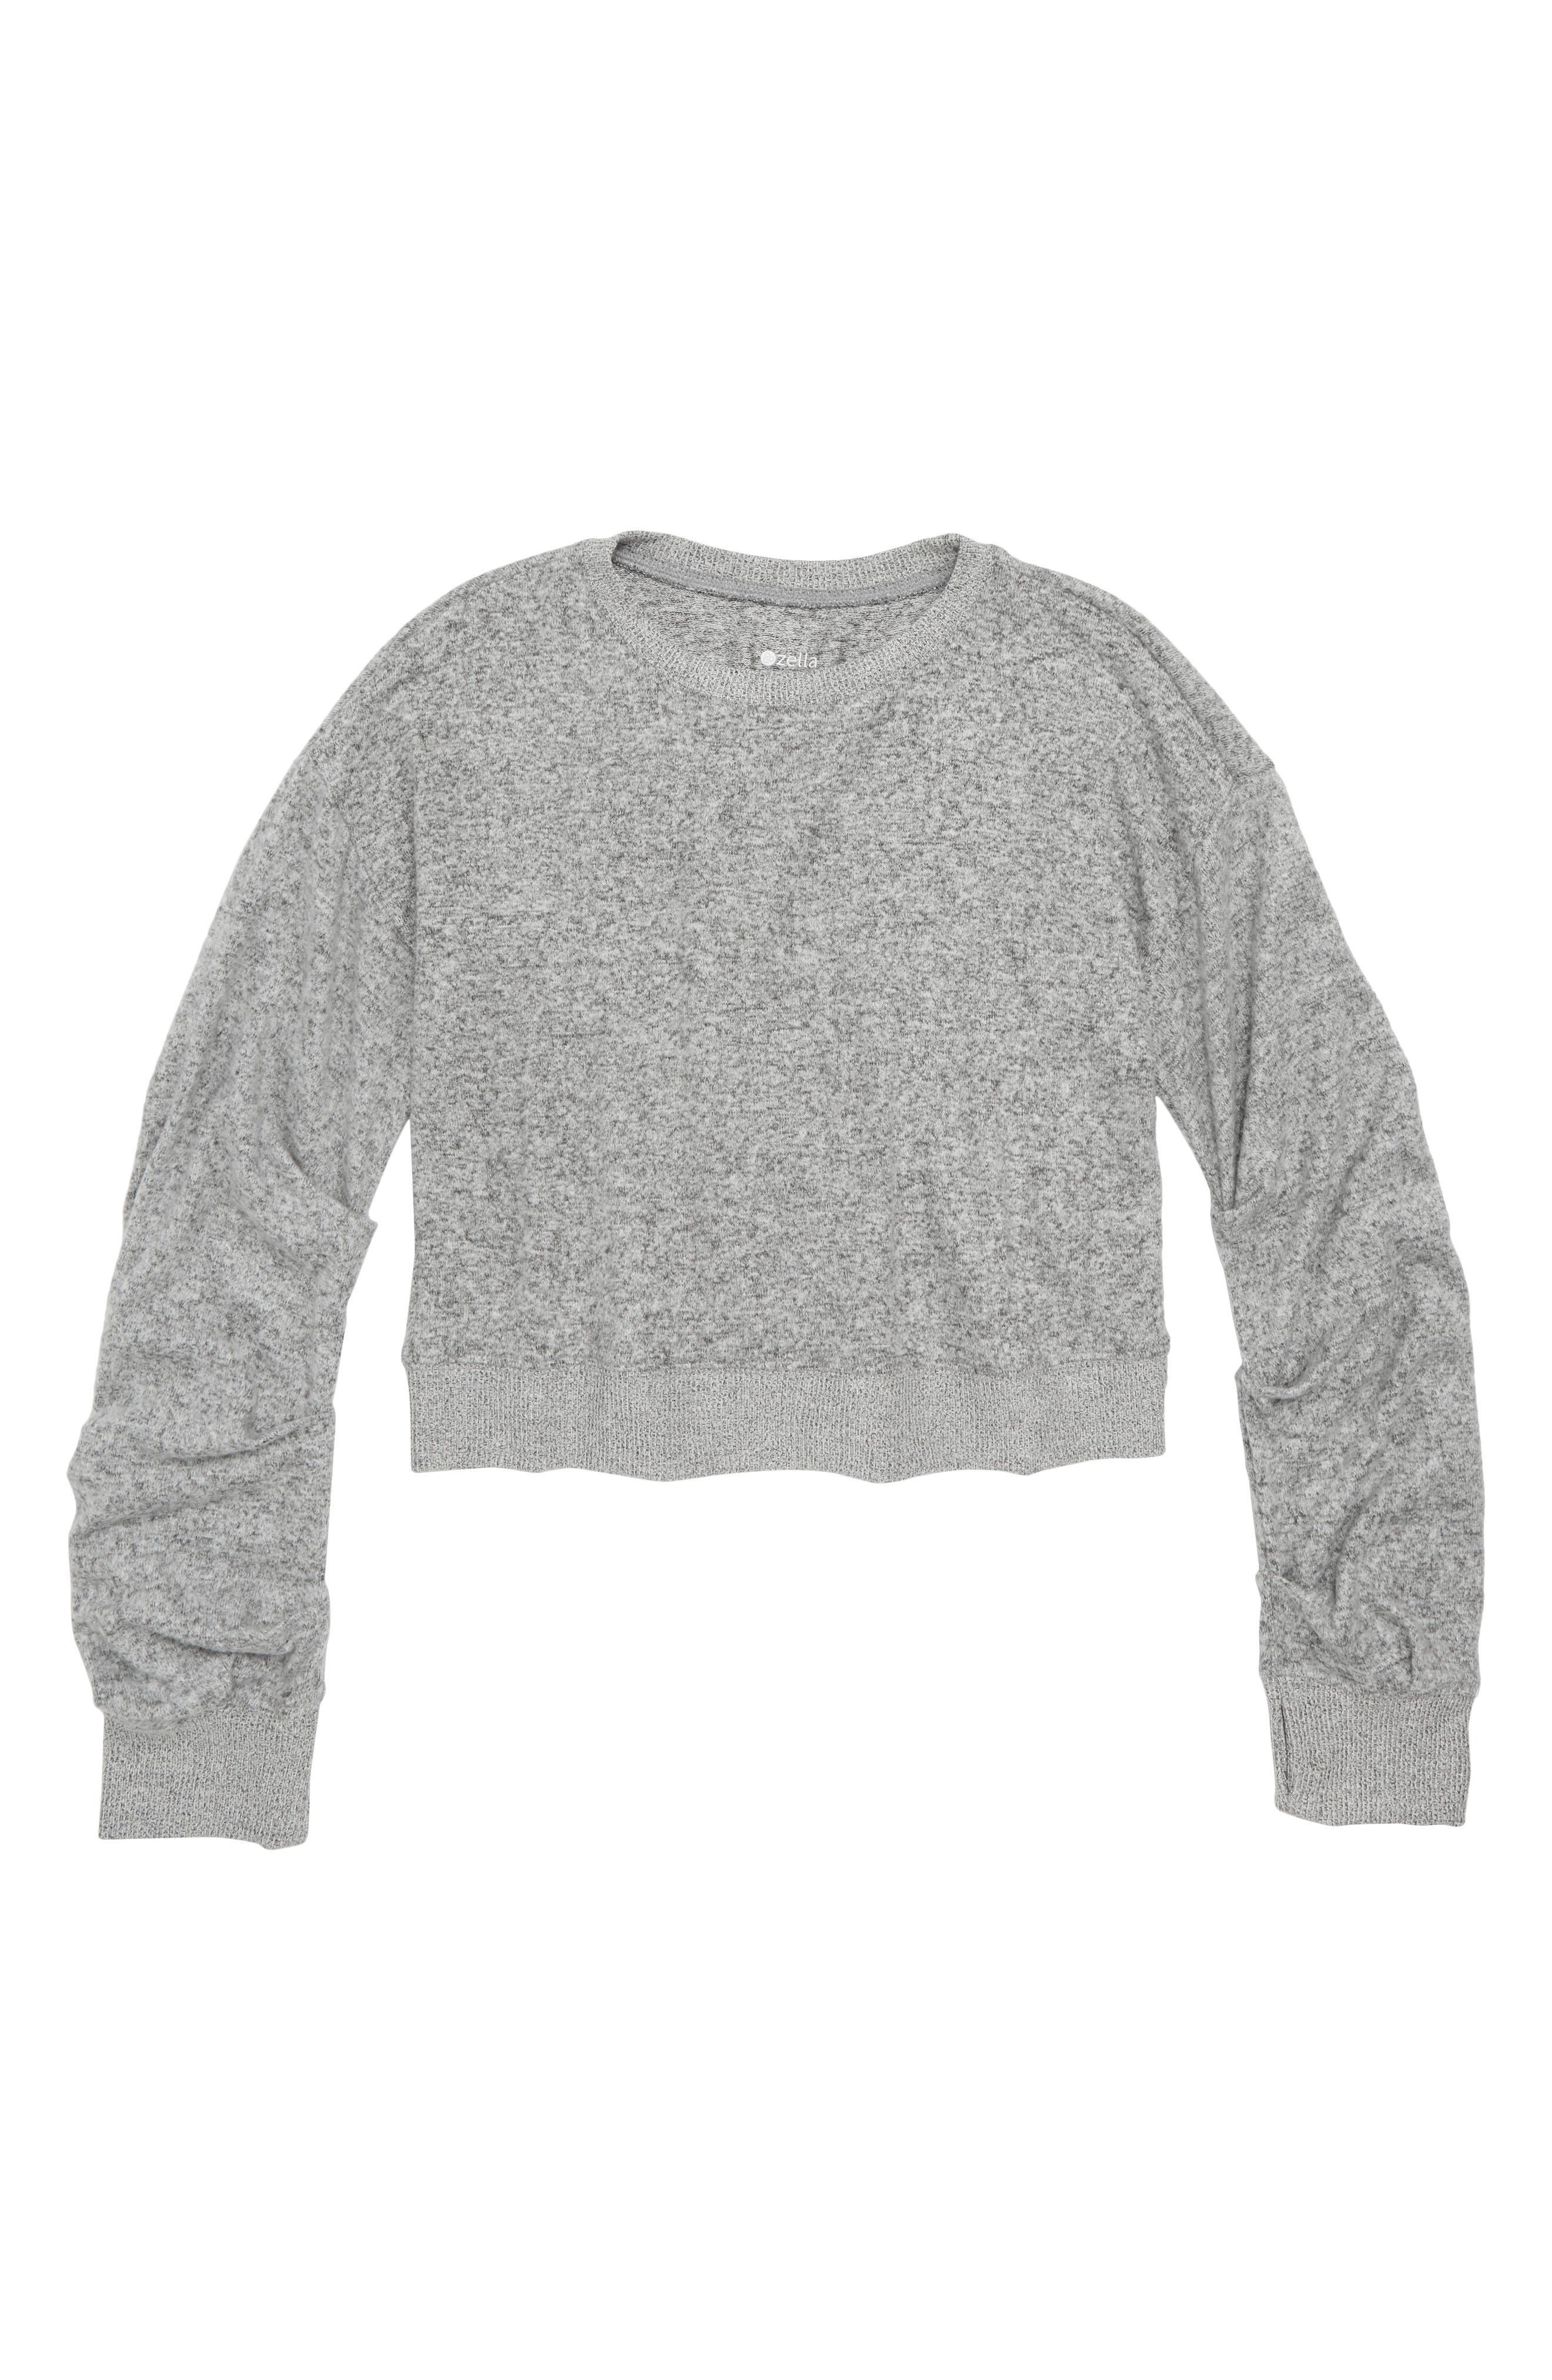 ZELLA GIRL, Ruched Pullover, Main thumbnail 1, color, GREY ASH HEATHER